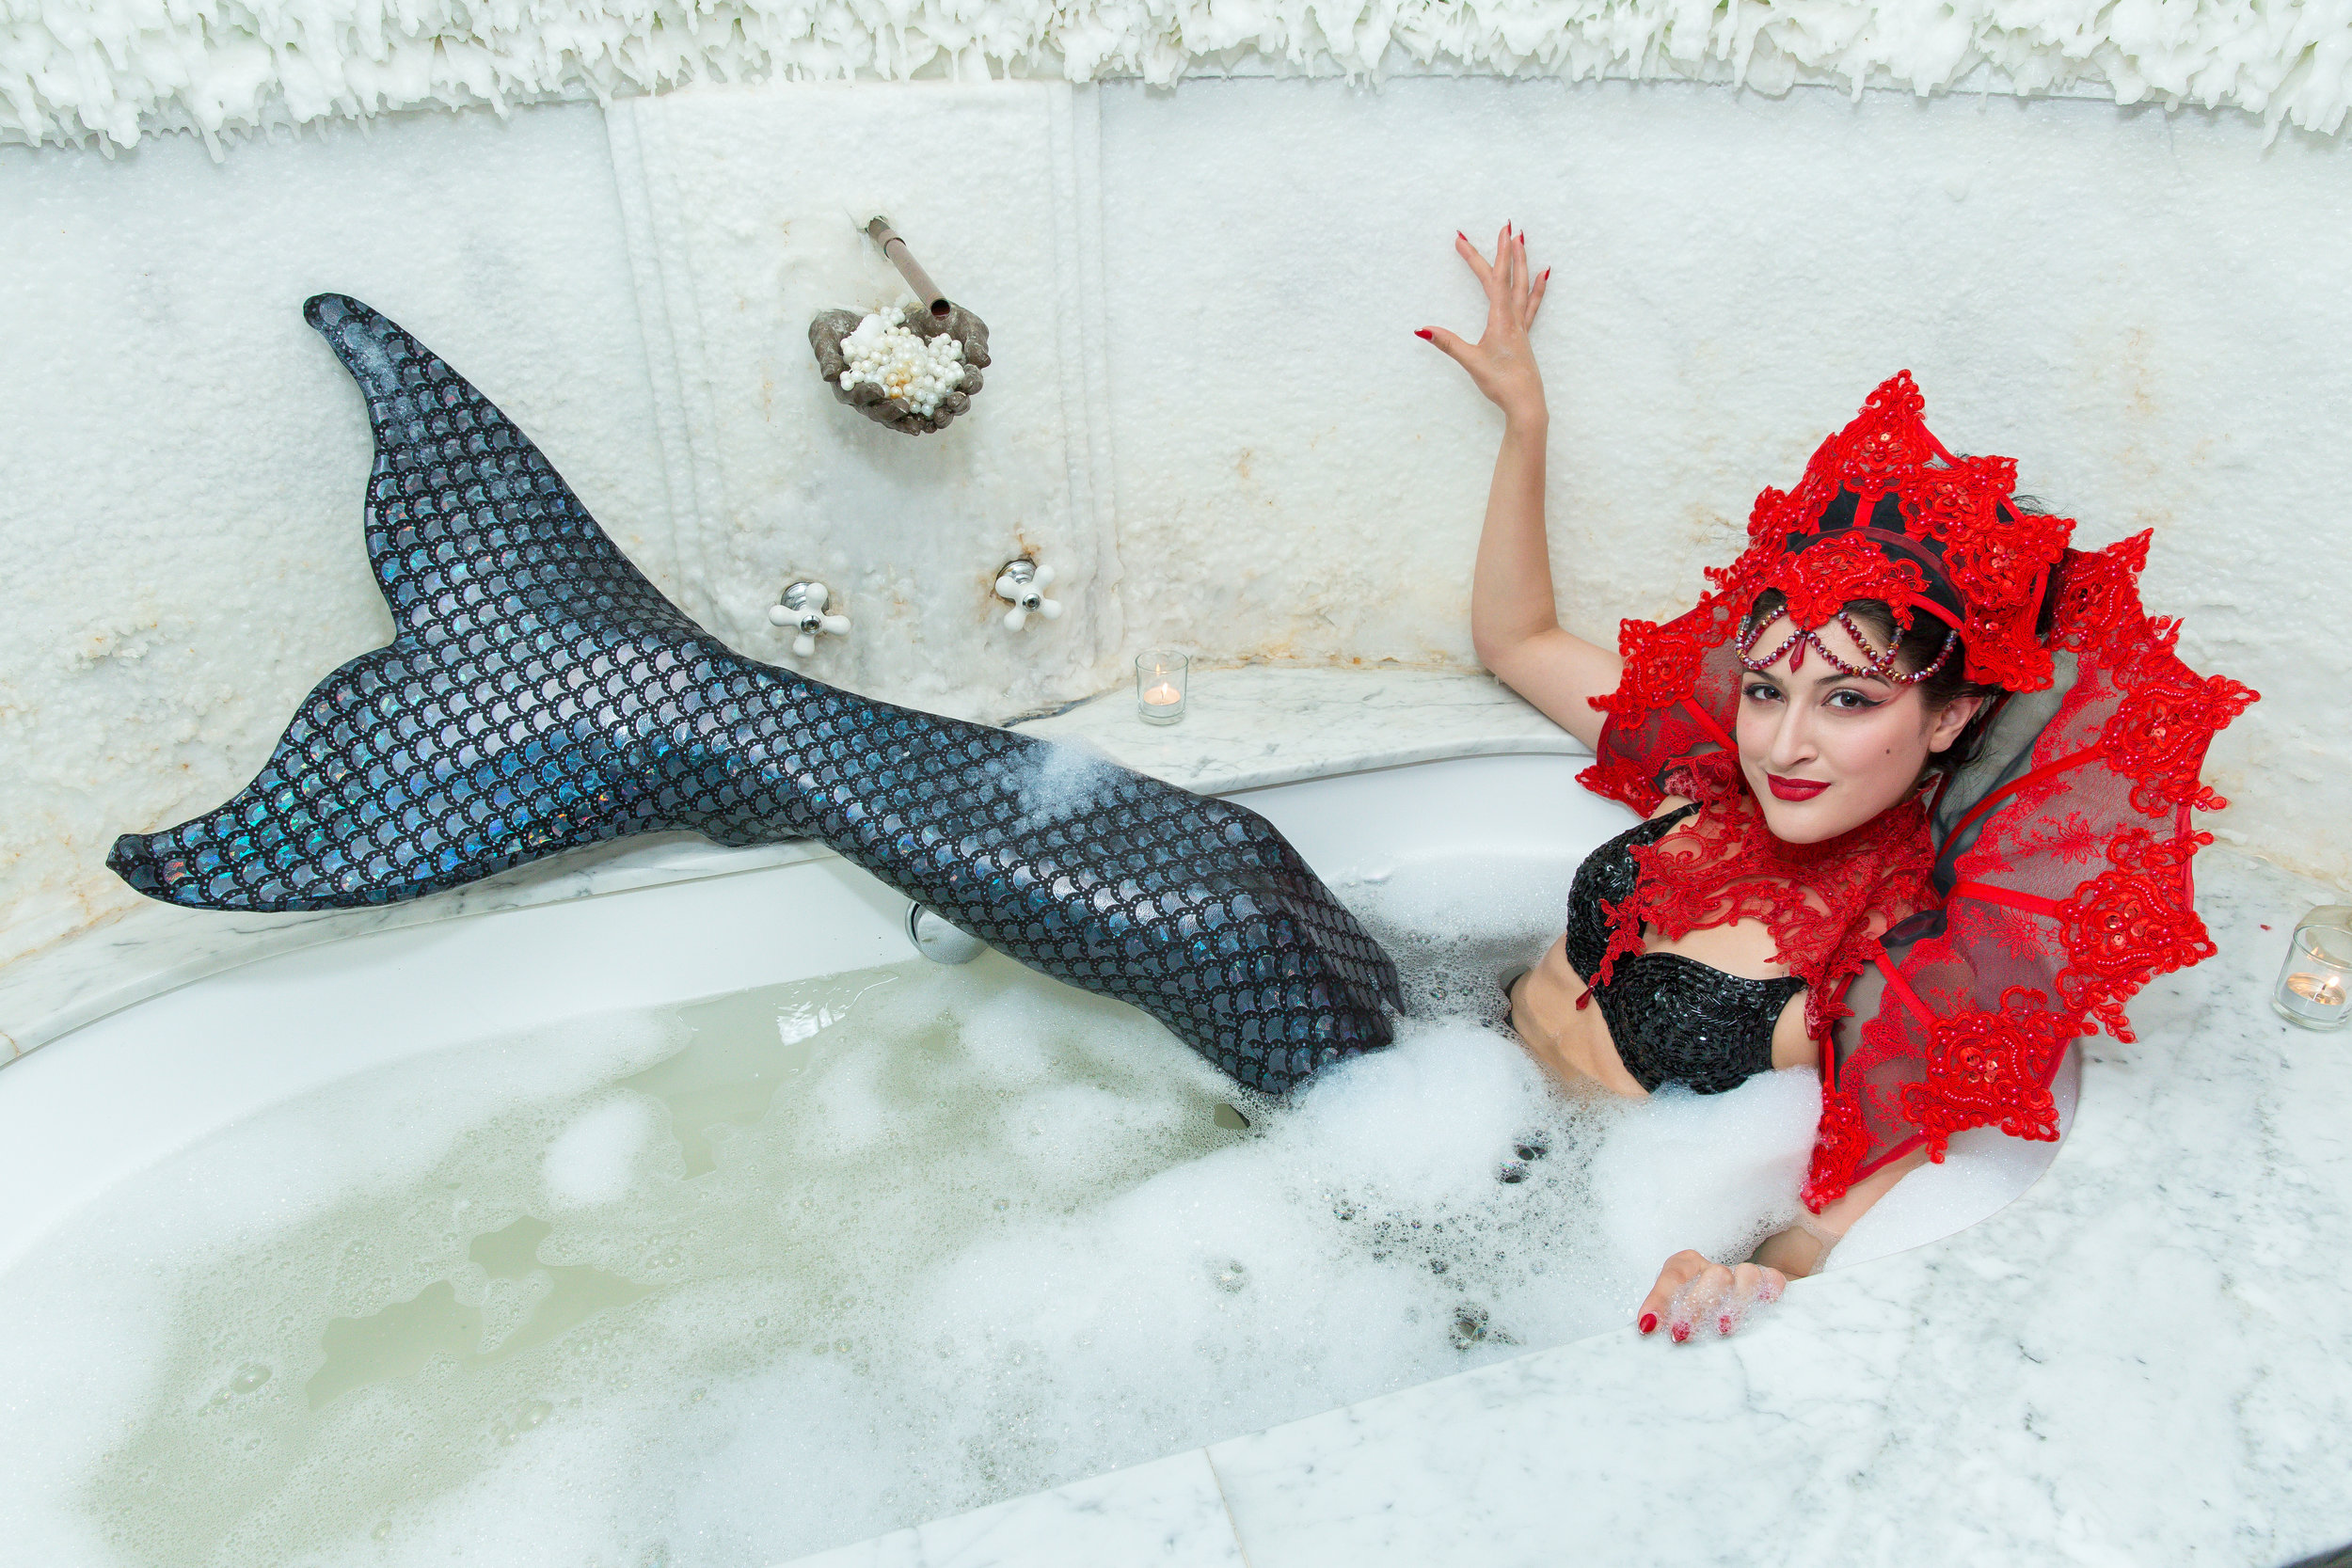 Mermaids love a good bubble bath! / Photo: Eric Vitale